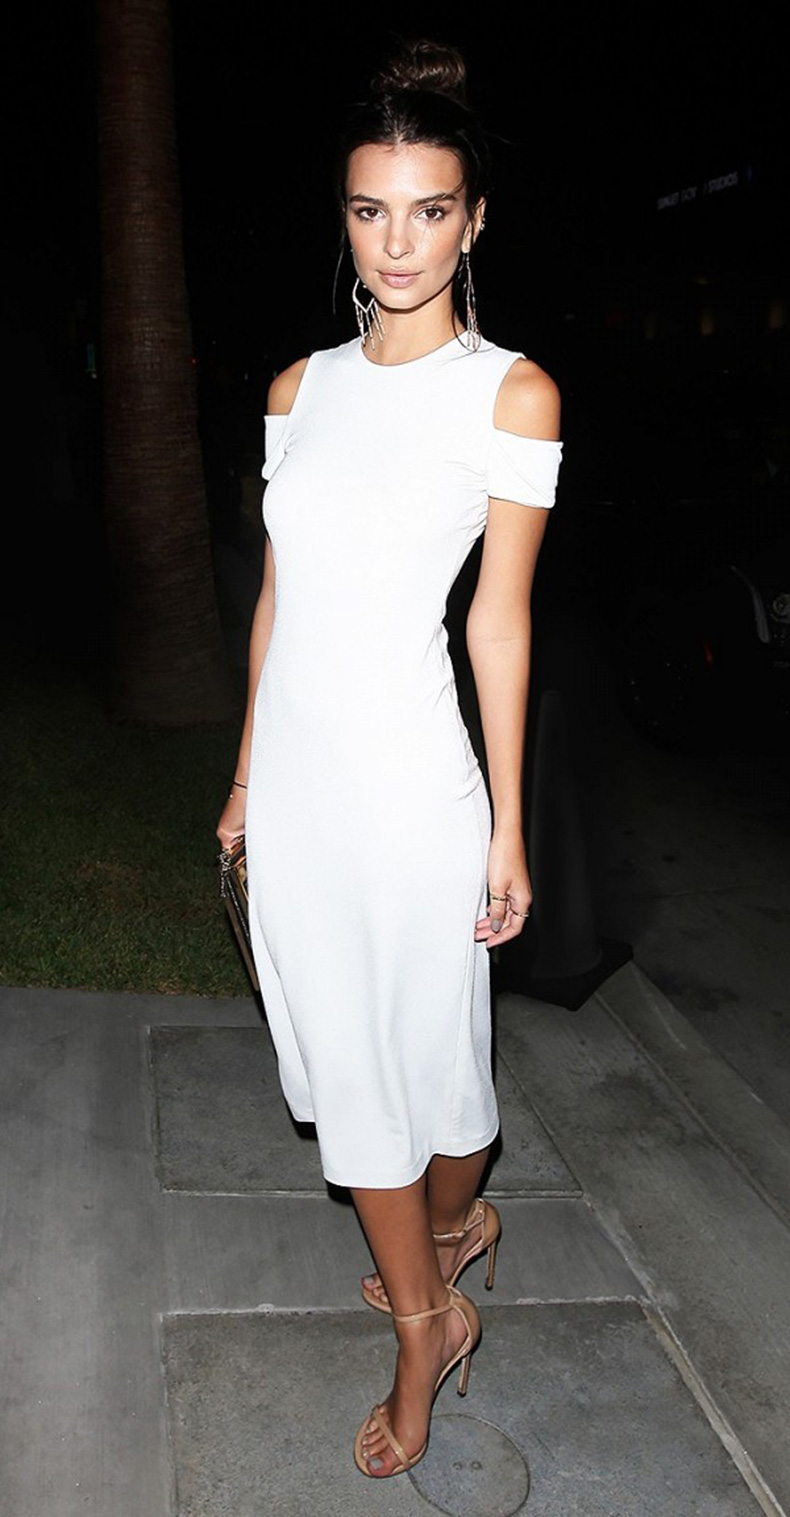 5-cute-celeb-outfits-you-can-re-create-for-way-less-1752884-1461990495.600x0c